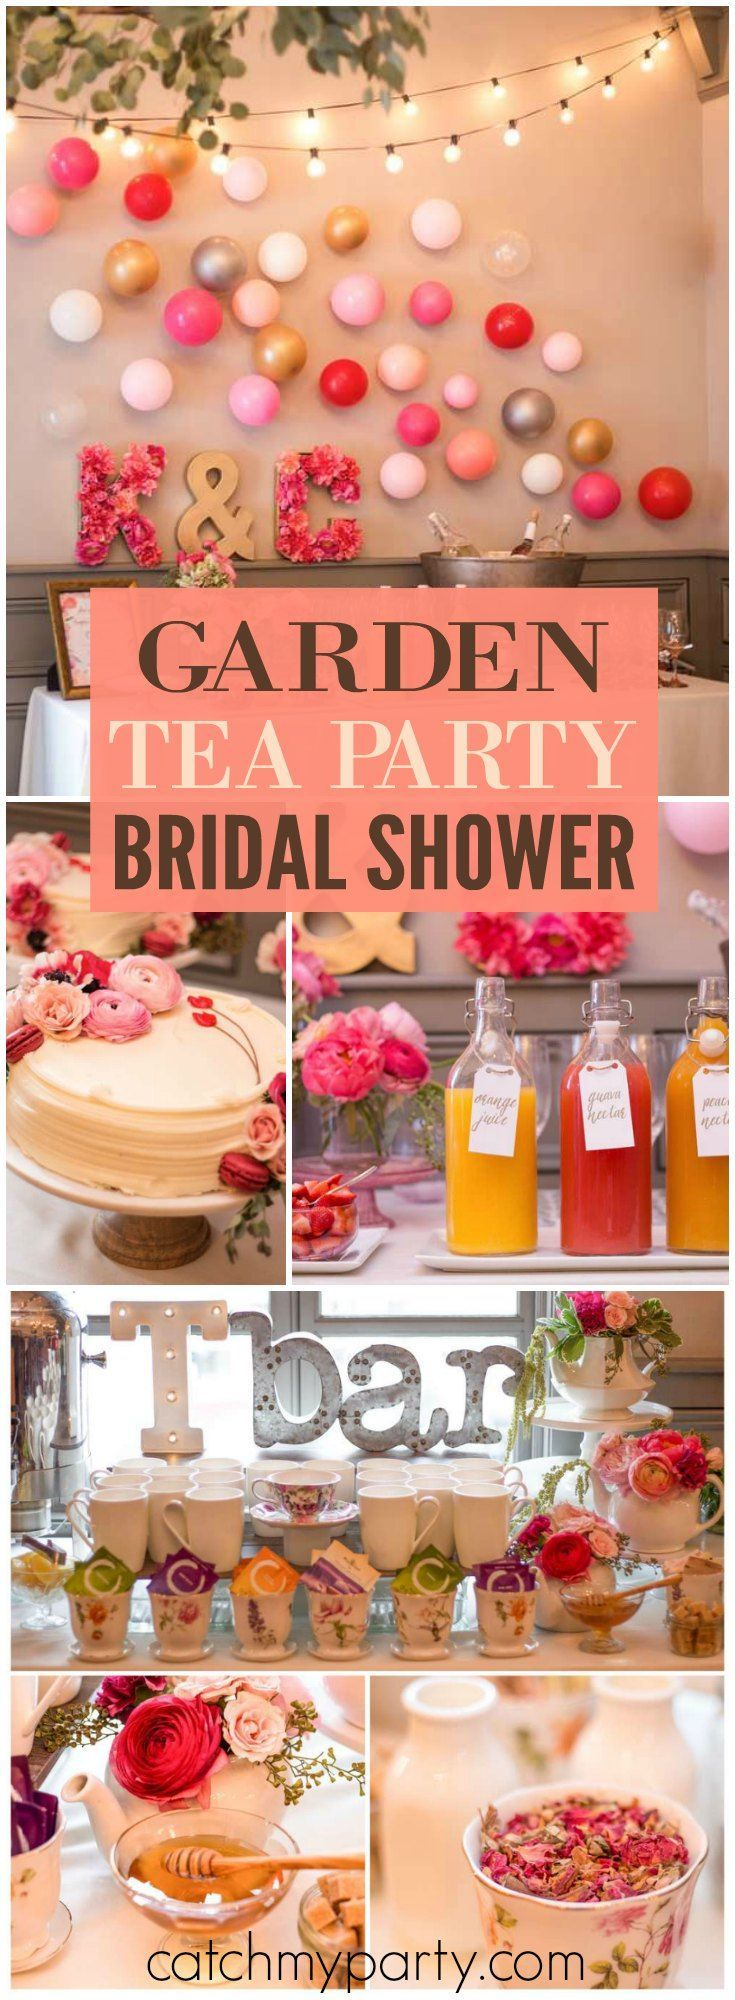 You have to see this gorgeous garden bridal shower with a tea bar!